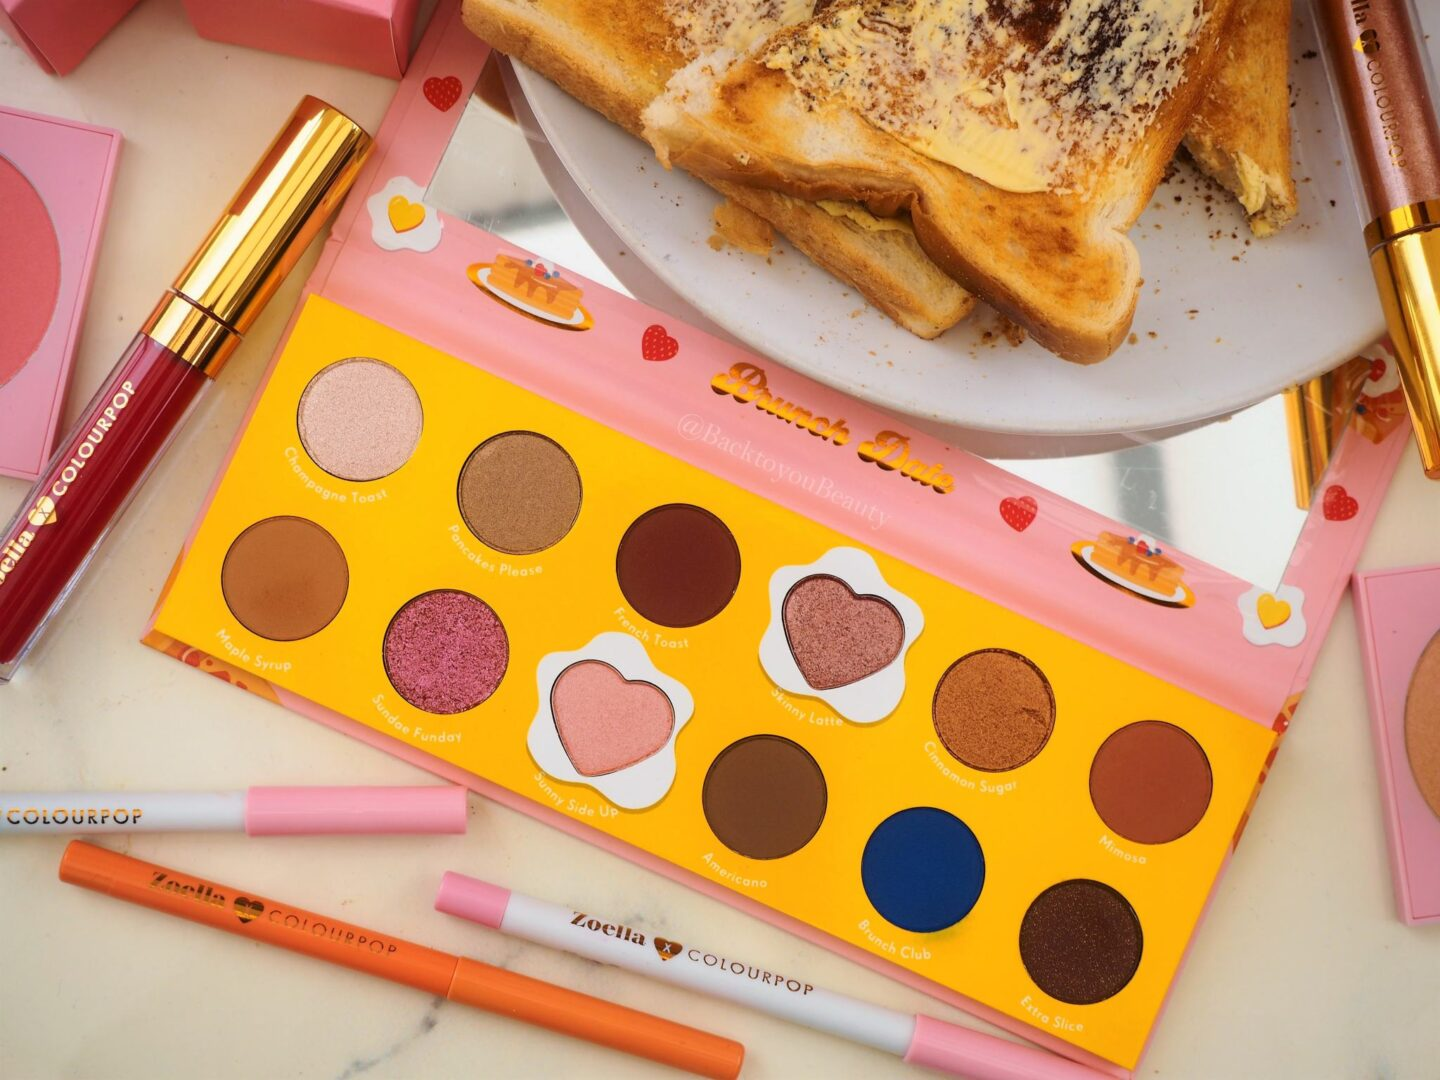 Brunch Date Palette zoella x colourpop